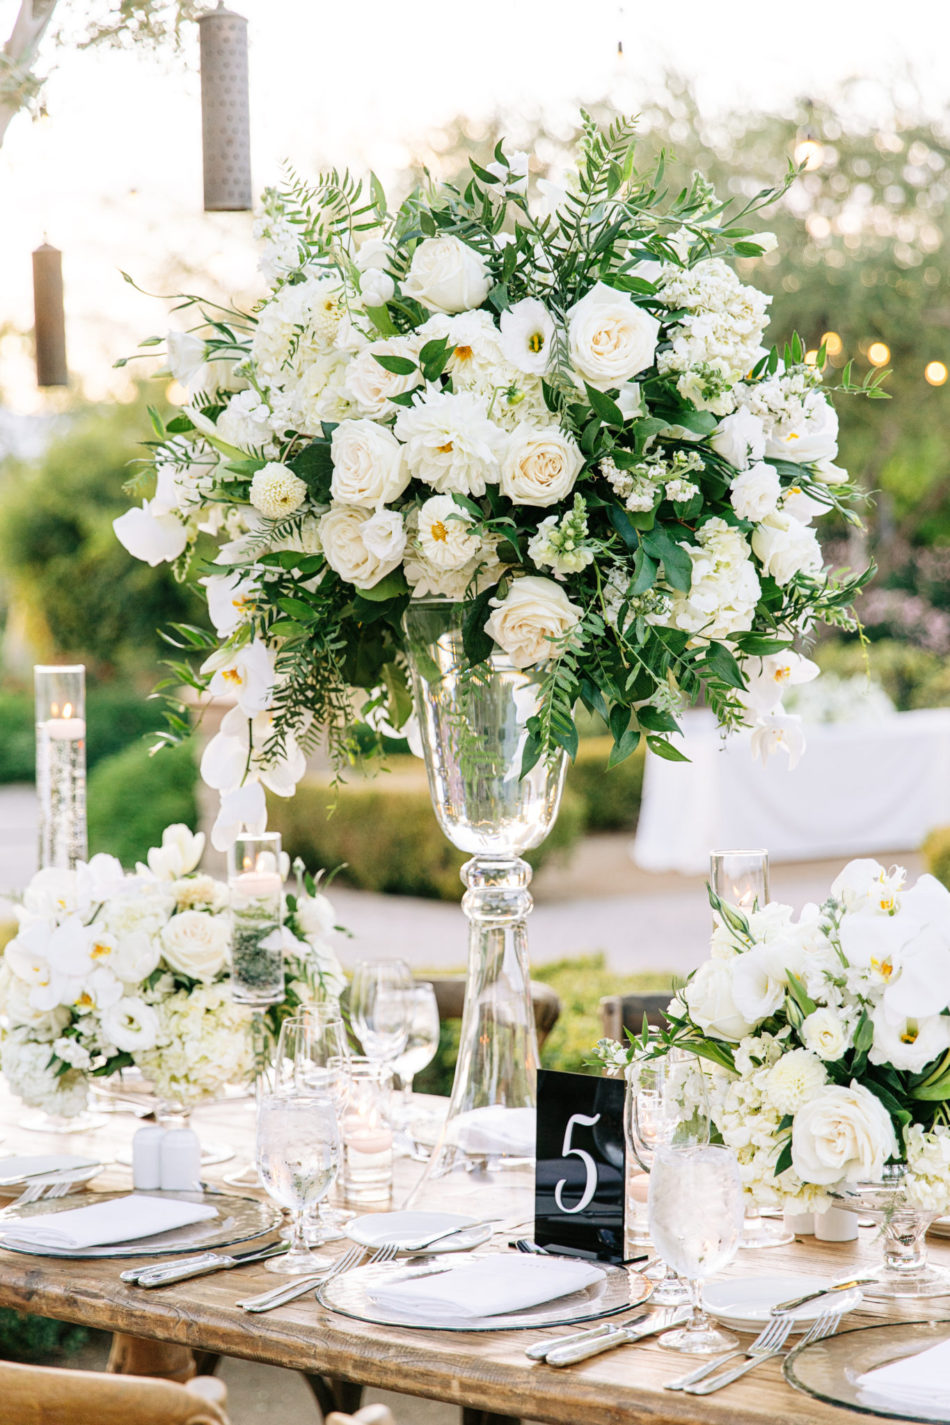 white centerpieces, white blooms, exquisite white wedding, floral design, florist, wedding florist, wedding flowers, orange county weddings, orange county wedding florist, orange county florist, orange county floral design, flowers by cina